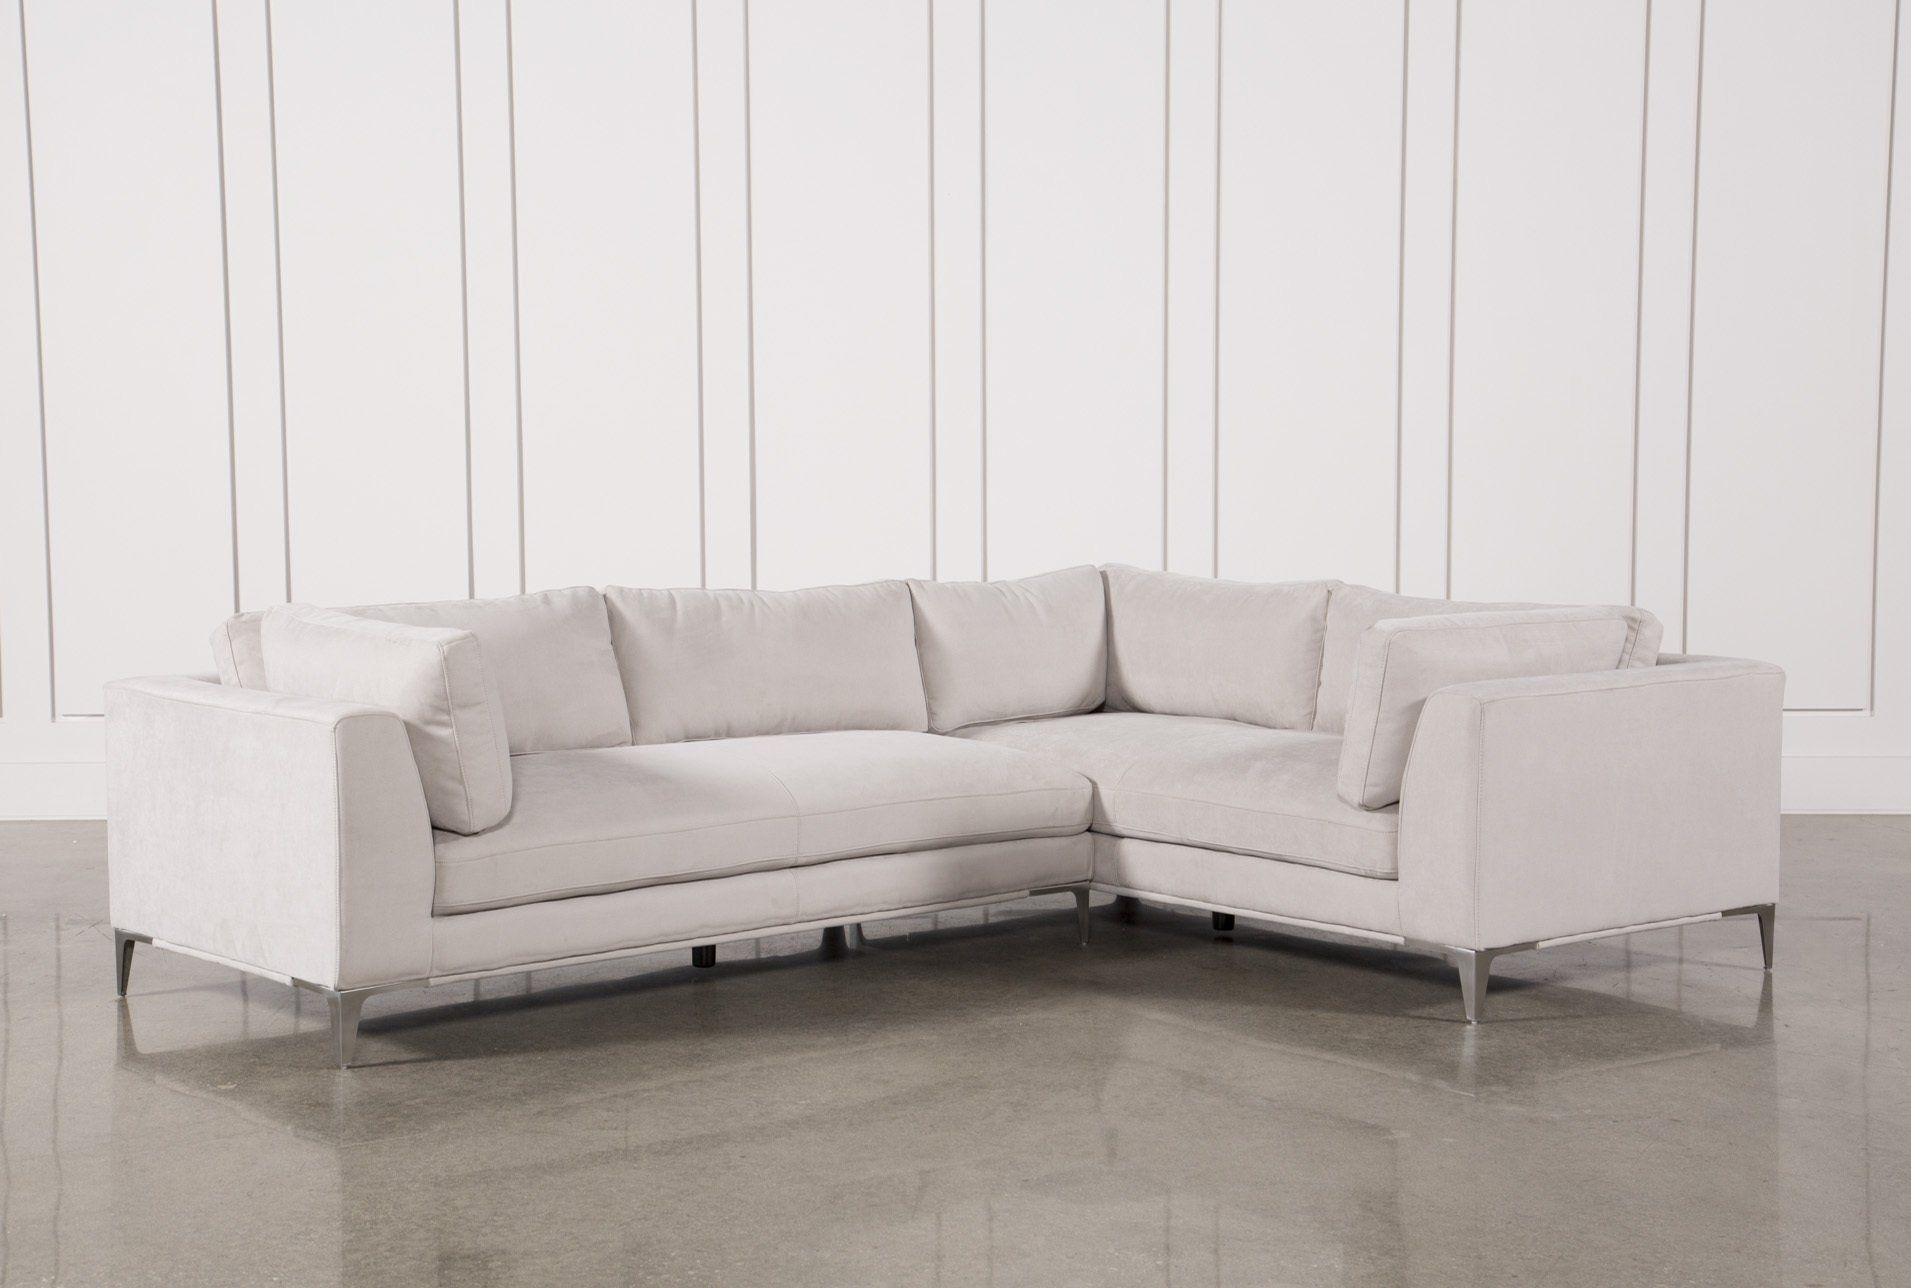 Cosmos Grey 2 Piece Sectional W/laf Chaise | Quilling | Pinterest With Cosmos Grey 2 Piece Sectionals With Raf Chaise (View 3 of 25)